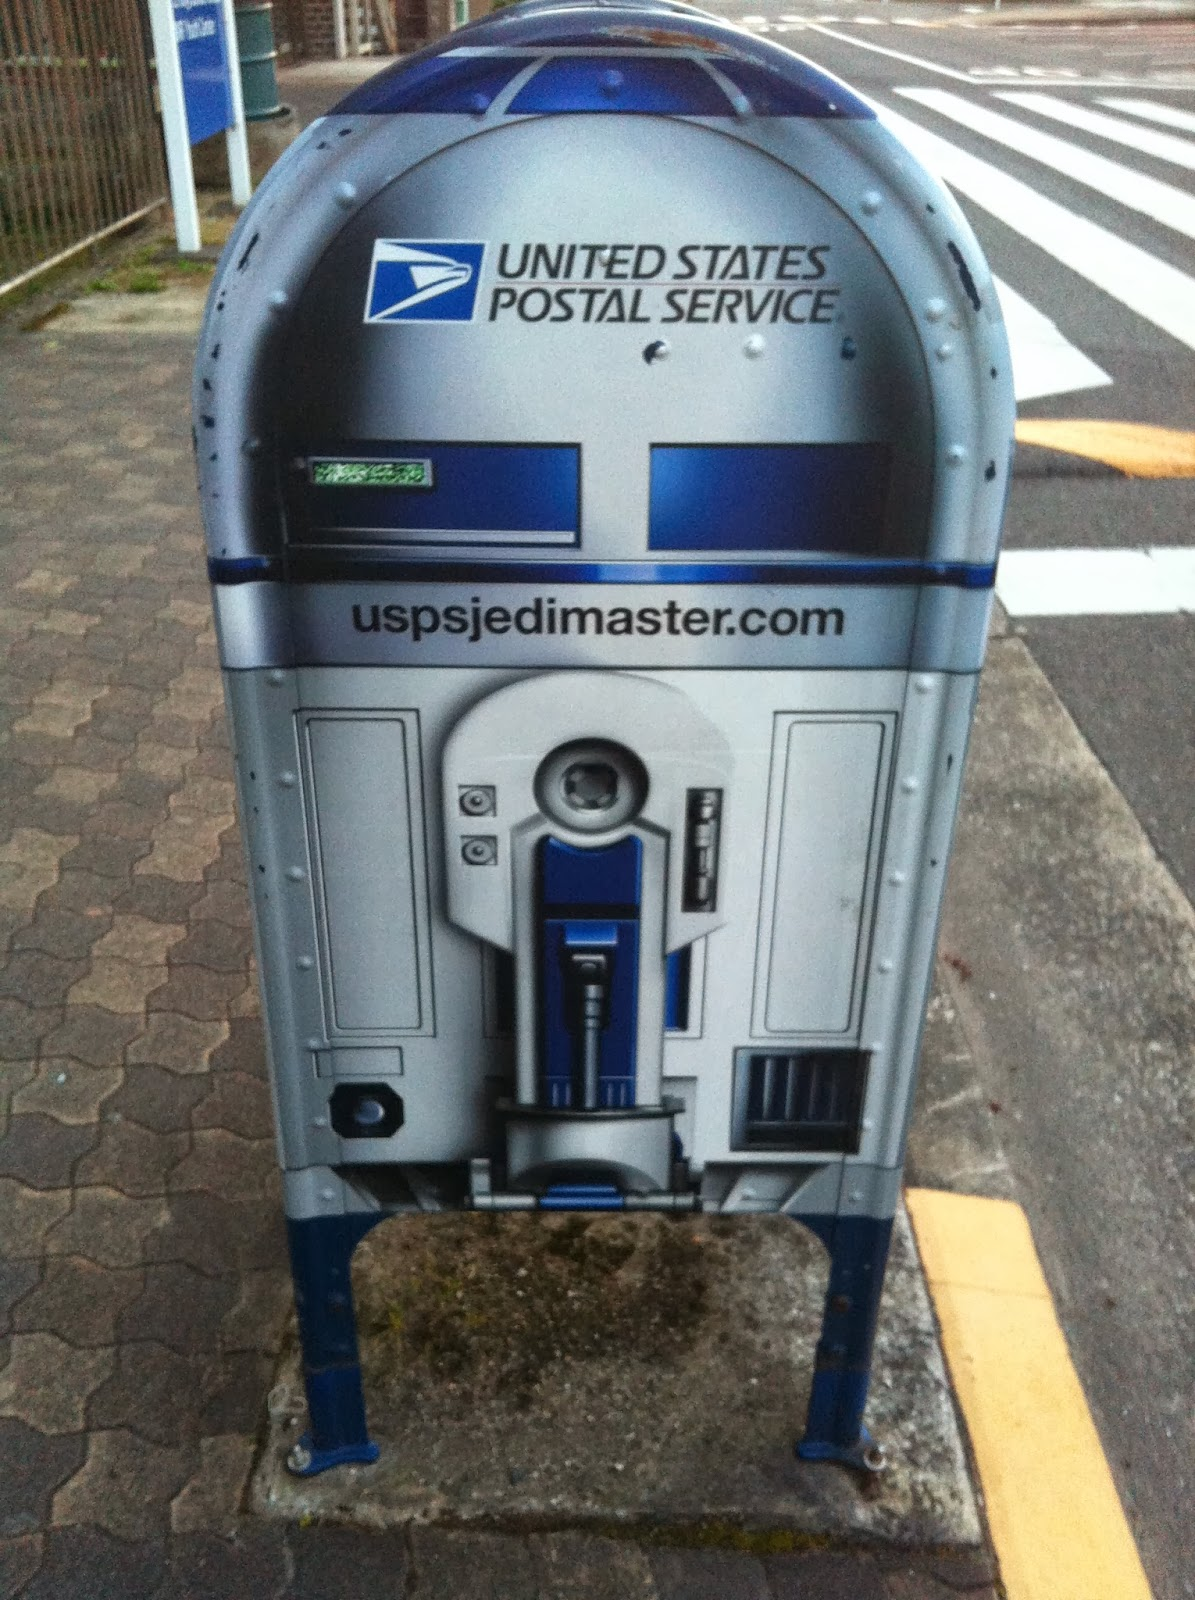 r2d2, star wars, usps